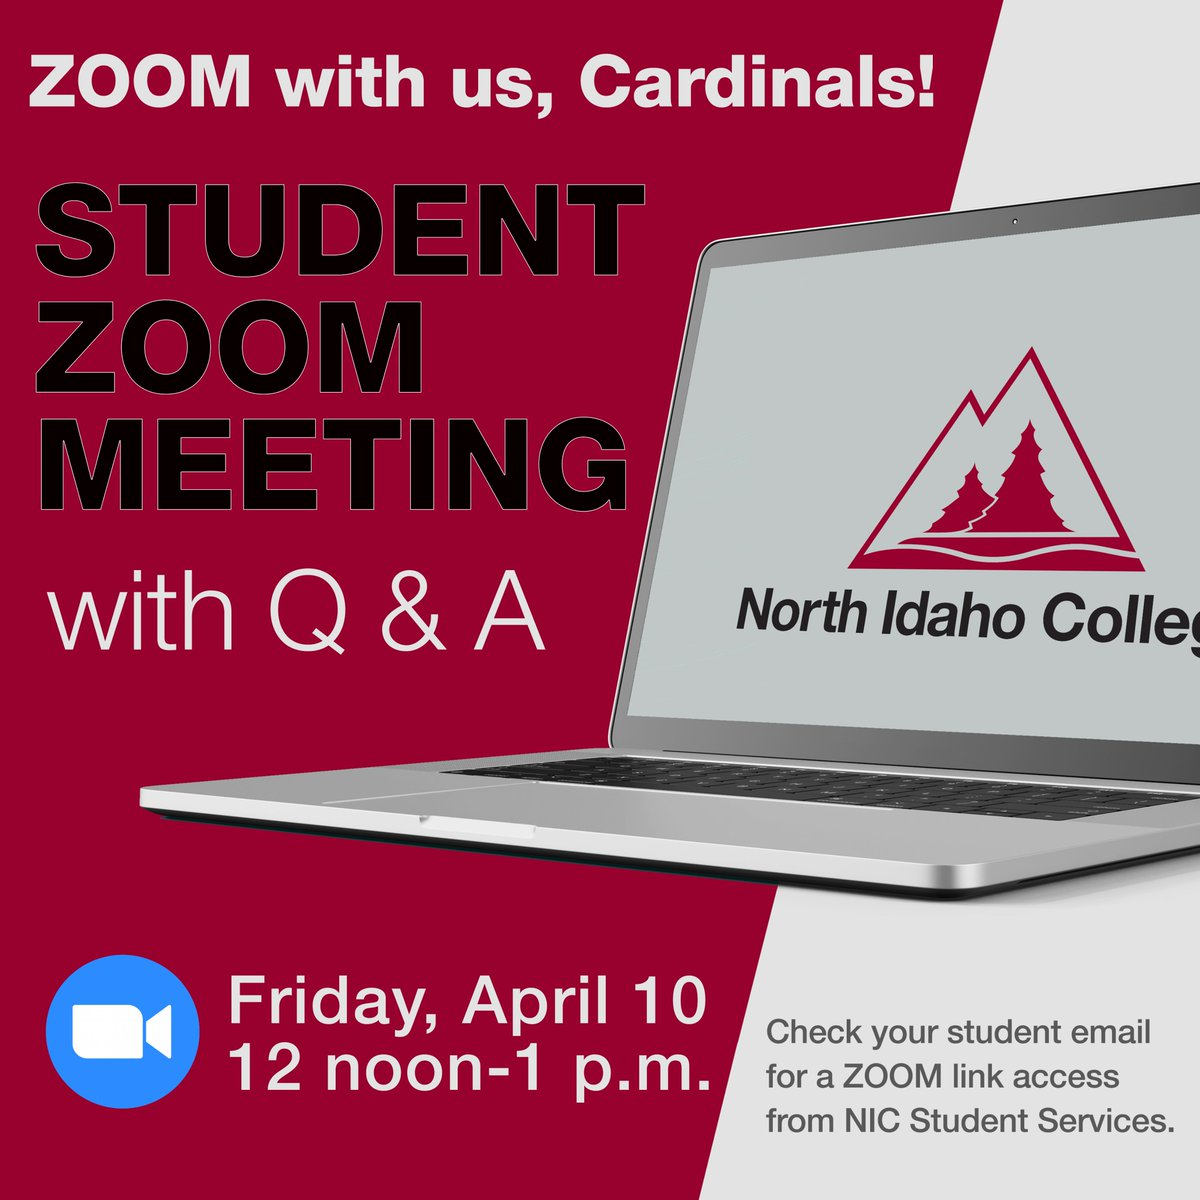 (2/2) Access the Zoom meeting with the link sent in today's email (4/9) by NIC's Student Services Office. See you there! #NIC #NorthIdahoCollege #NorthIdahopic.twitter.com/KDaCjh5Trp